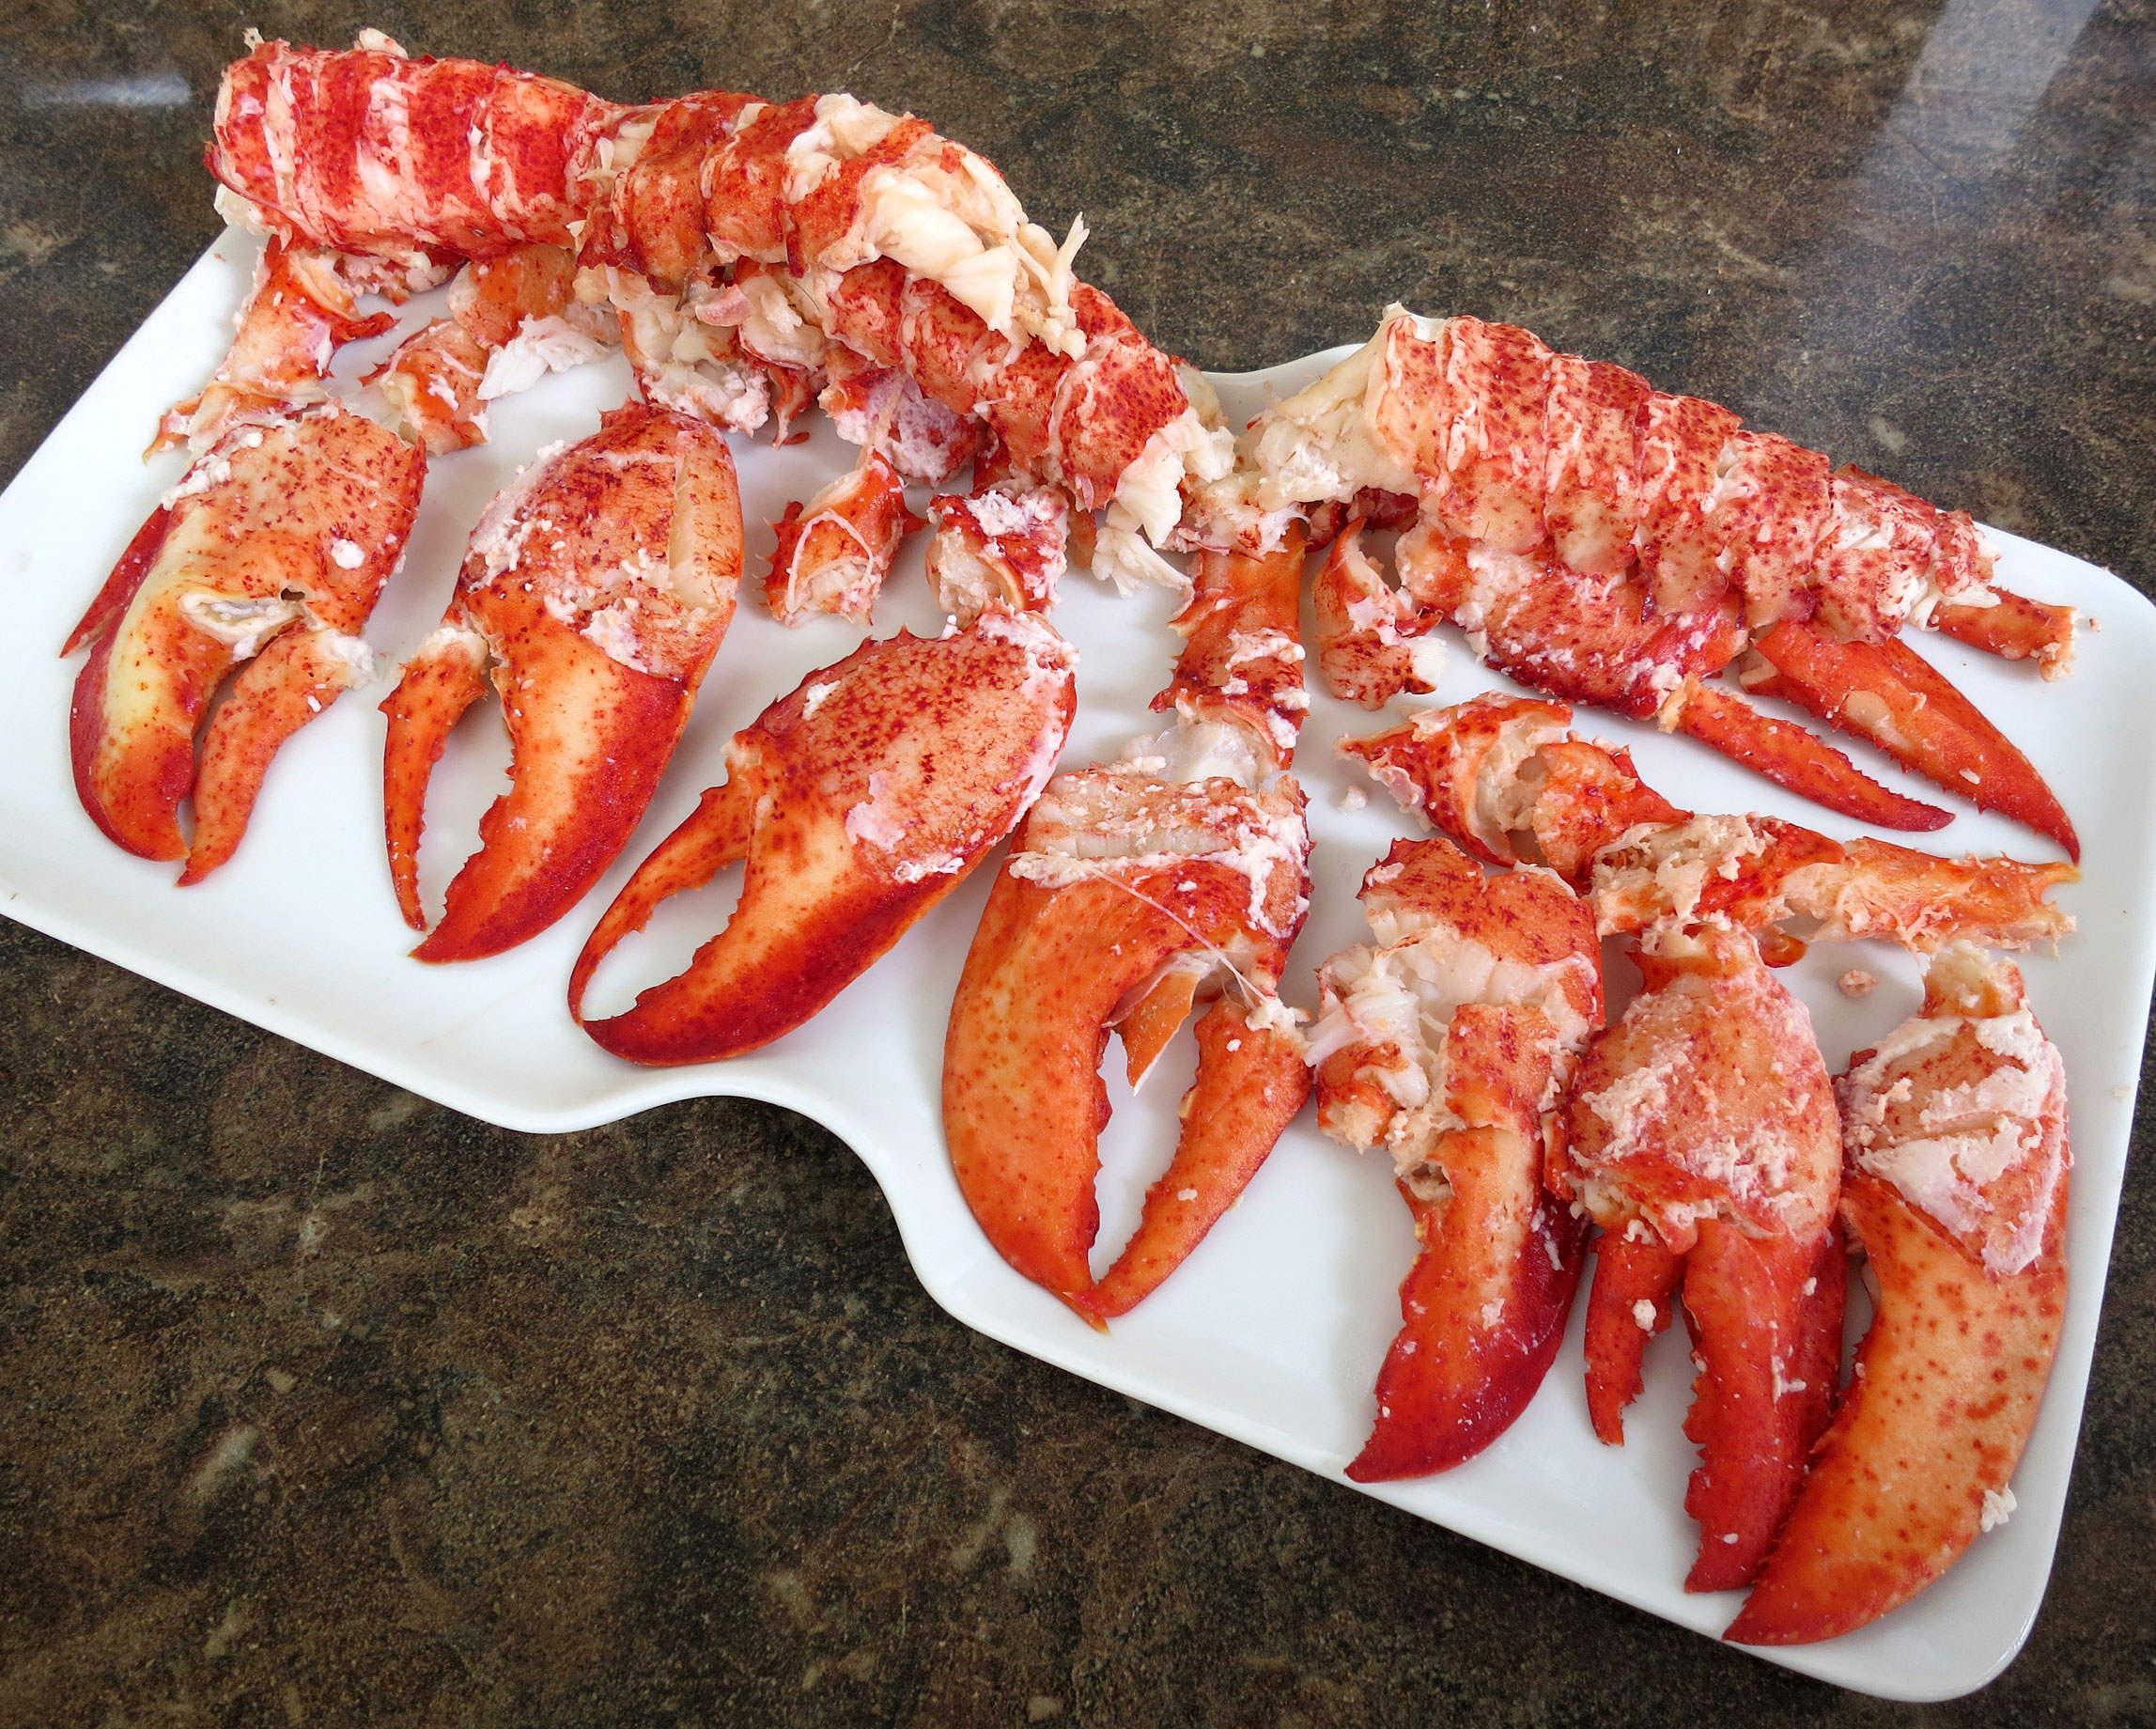 Lobster Rolls 103: Connecticut, New England and Maine Style – Tasty Island